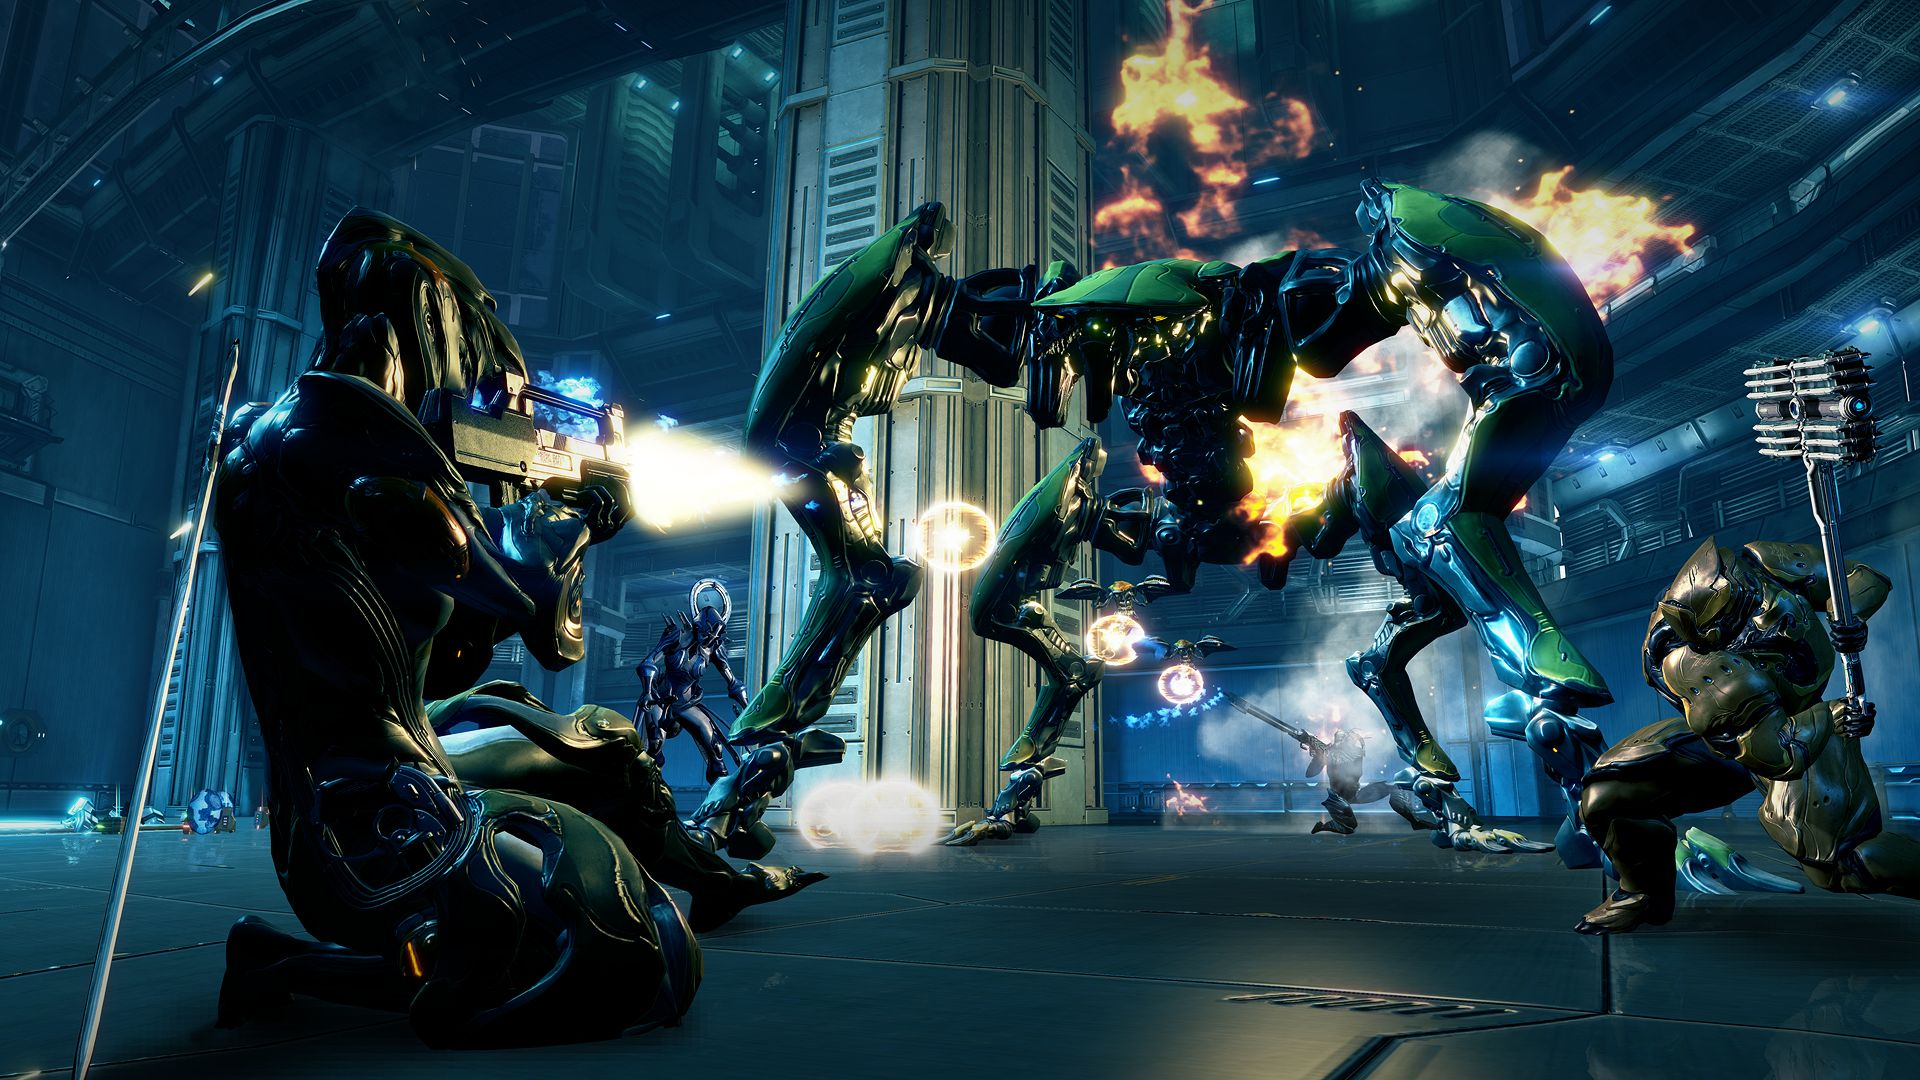 Warframe is getting an open world expansion later this year 1